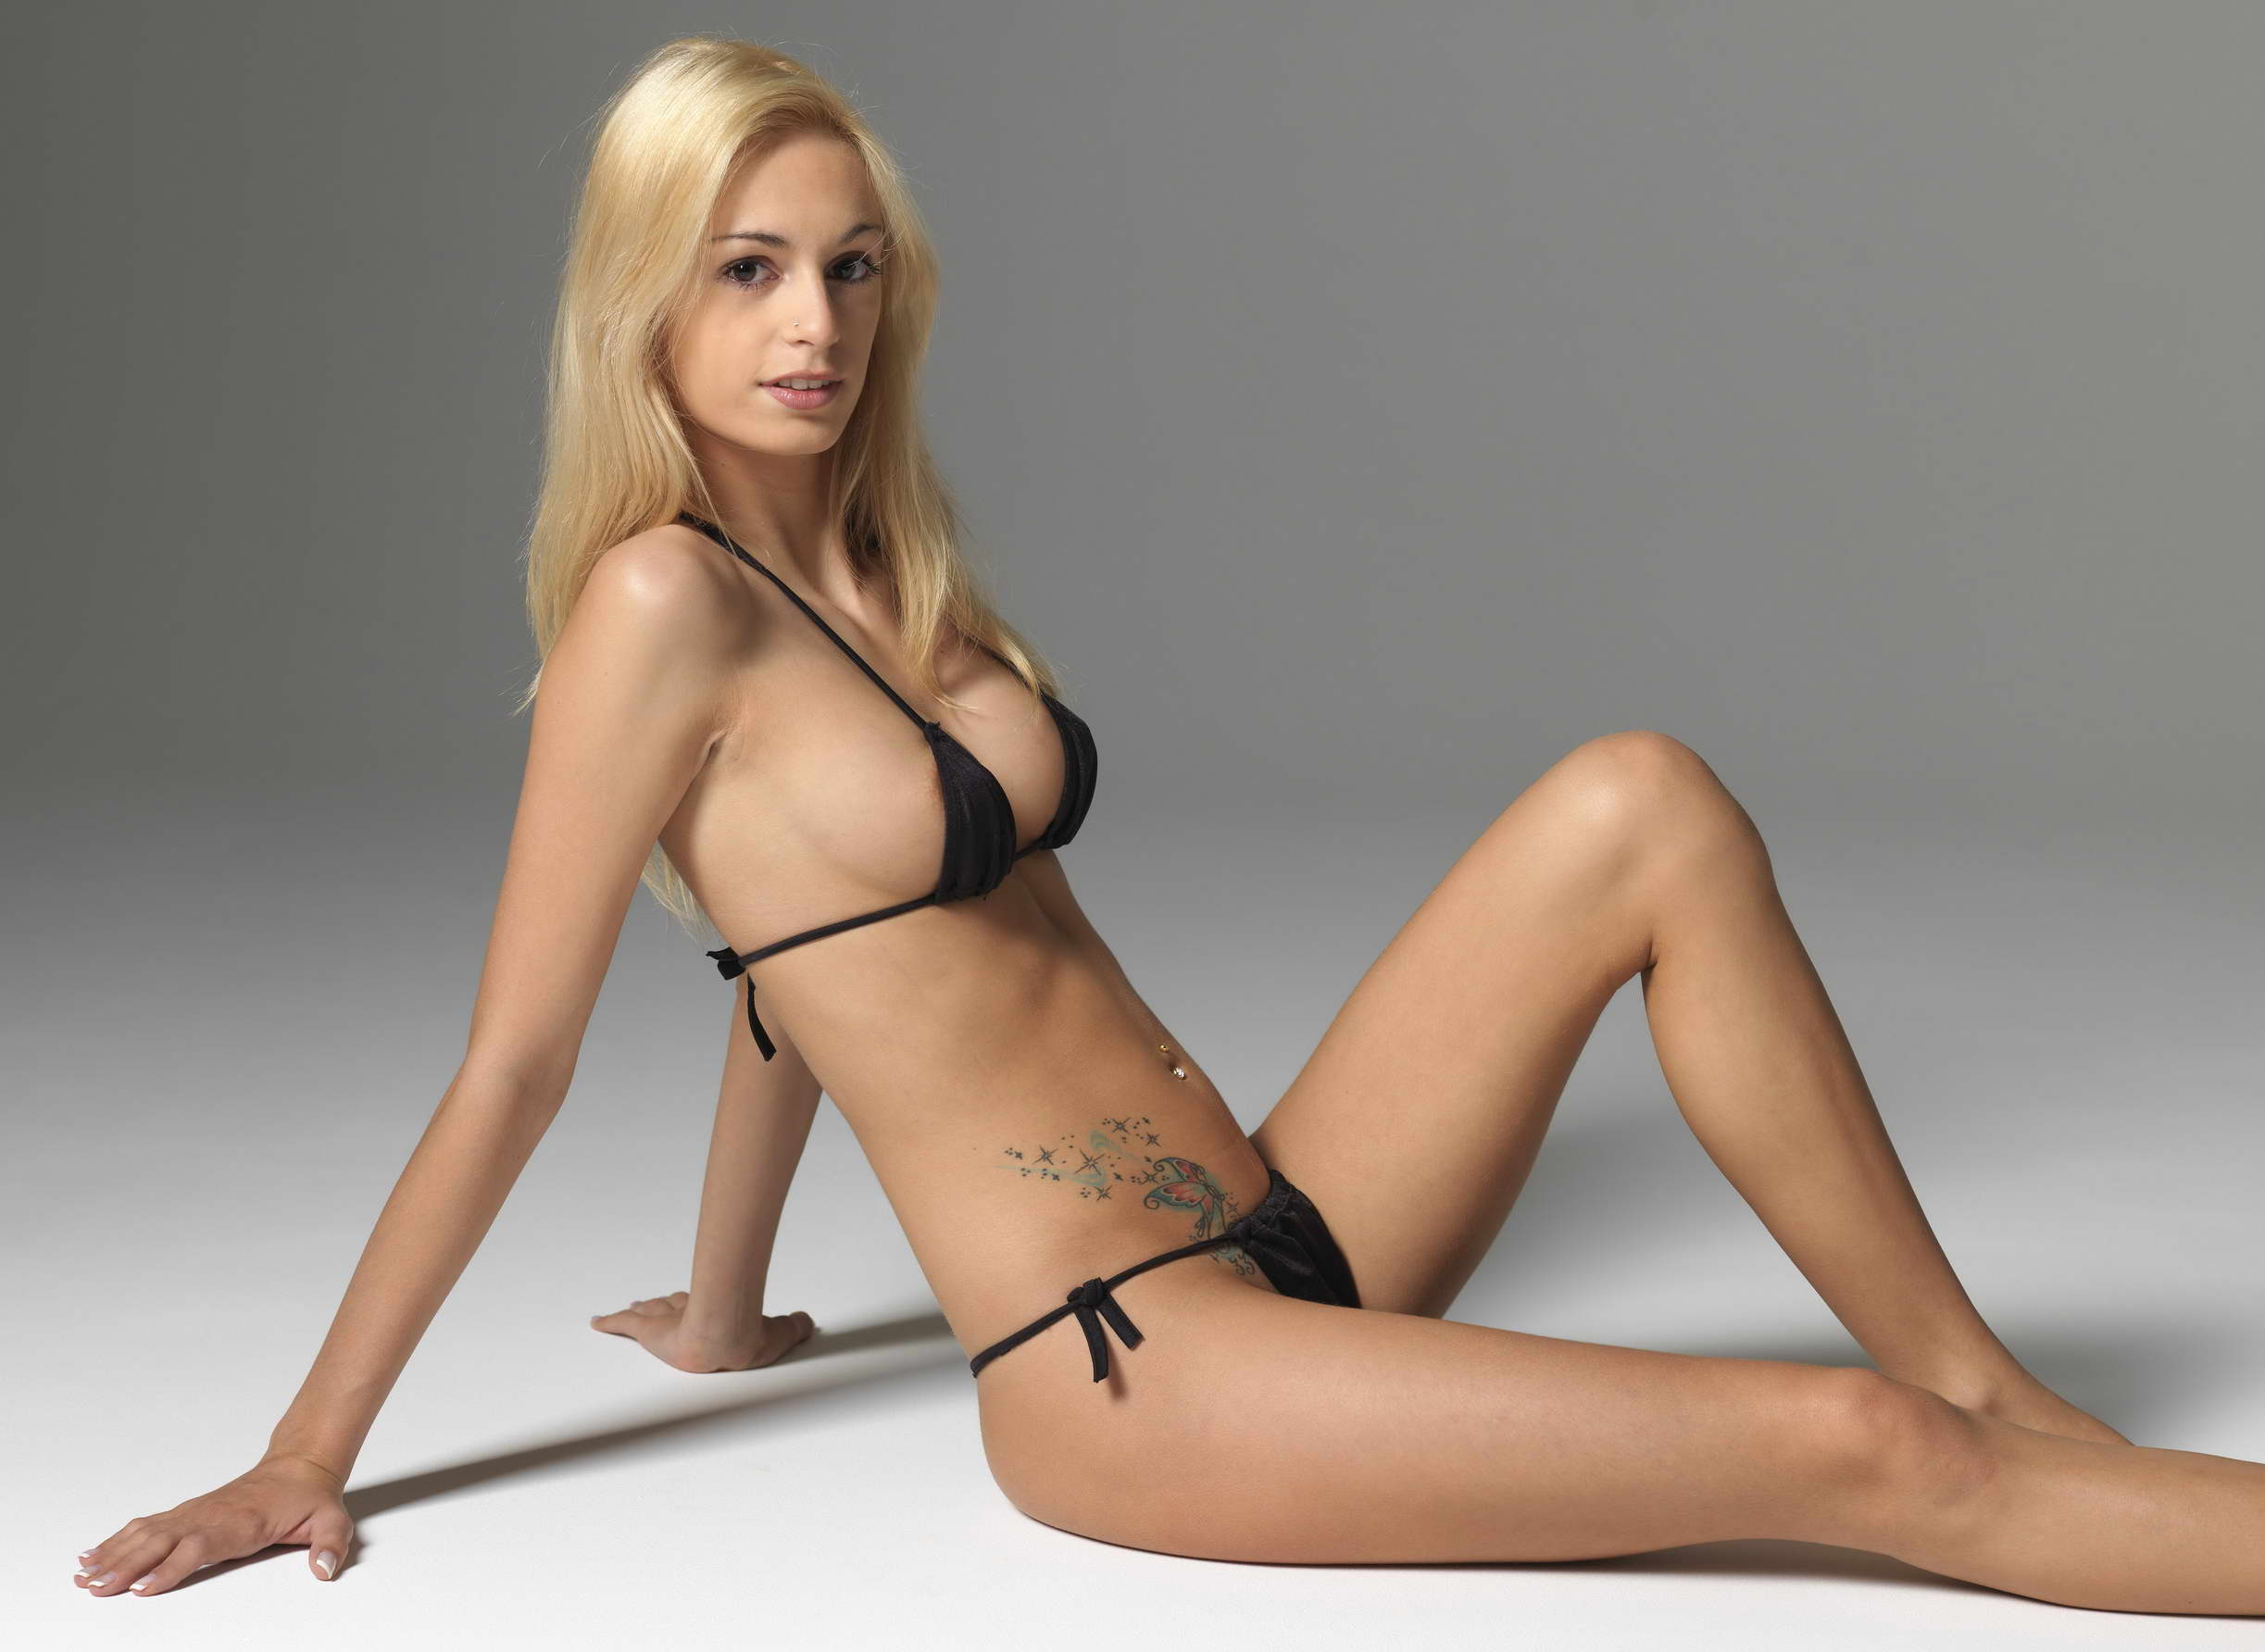 guildford escorts - slim with big boobs